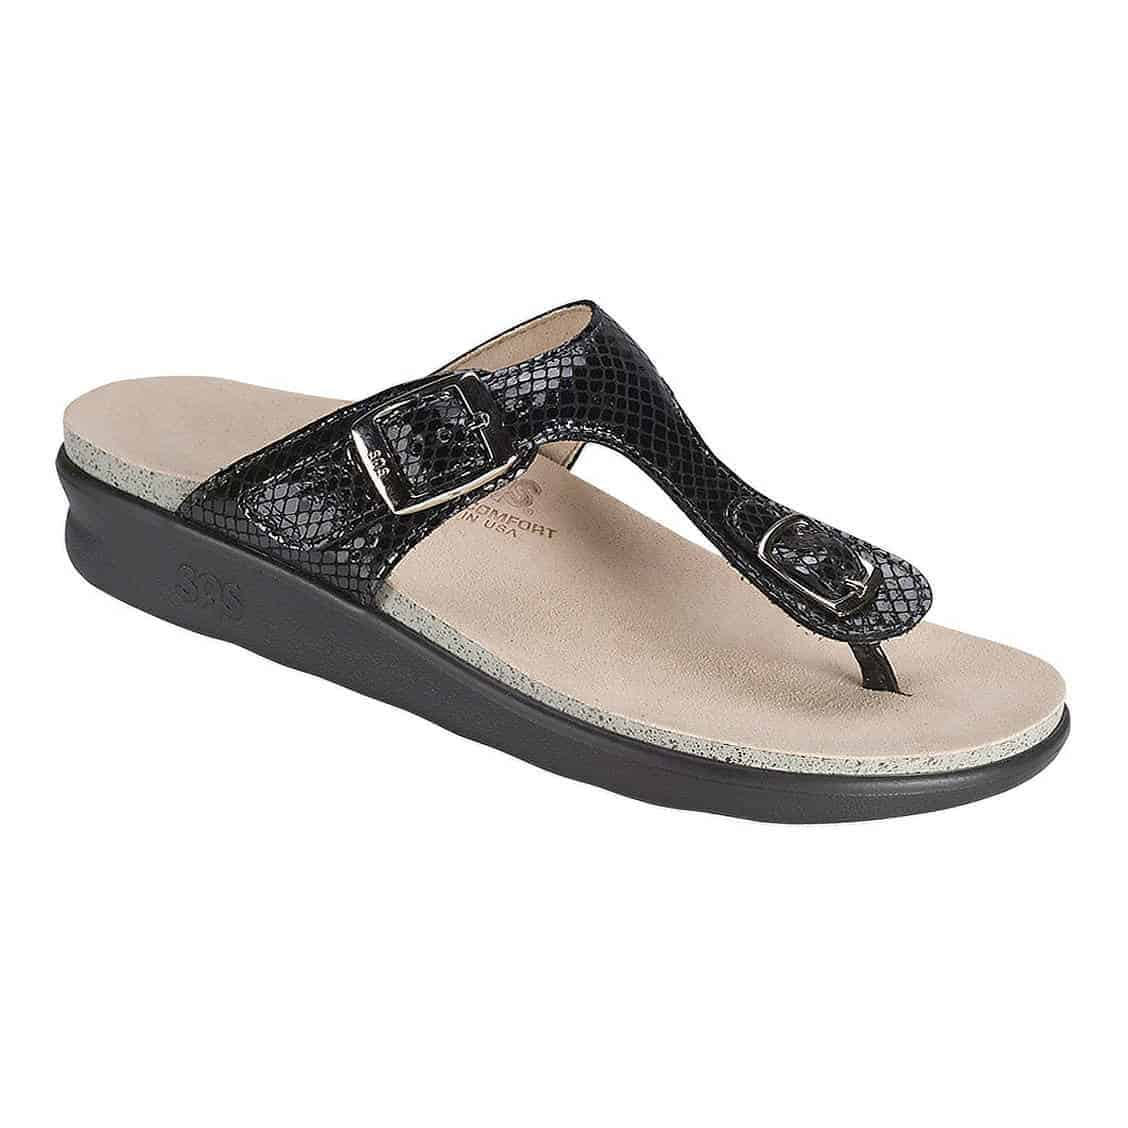 sas-womens-sanibel-colors-black-snake-2156-211-1